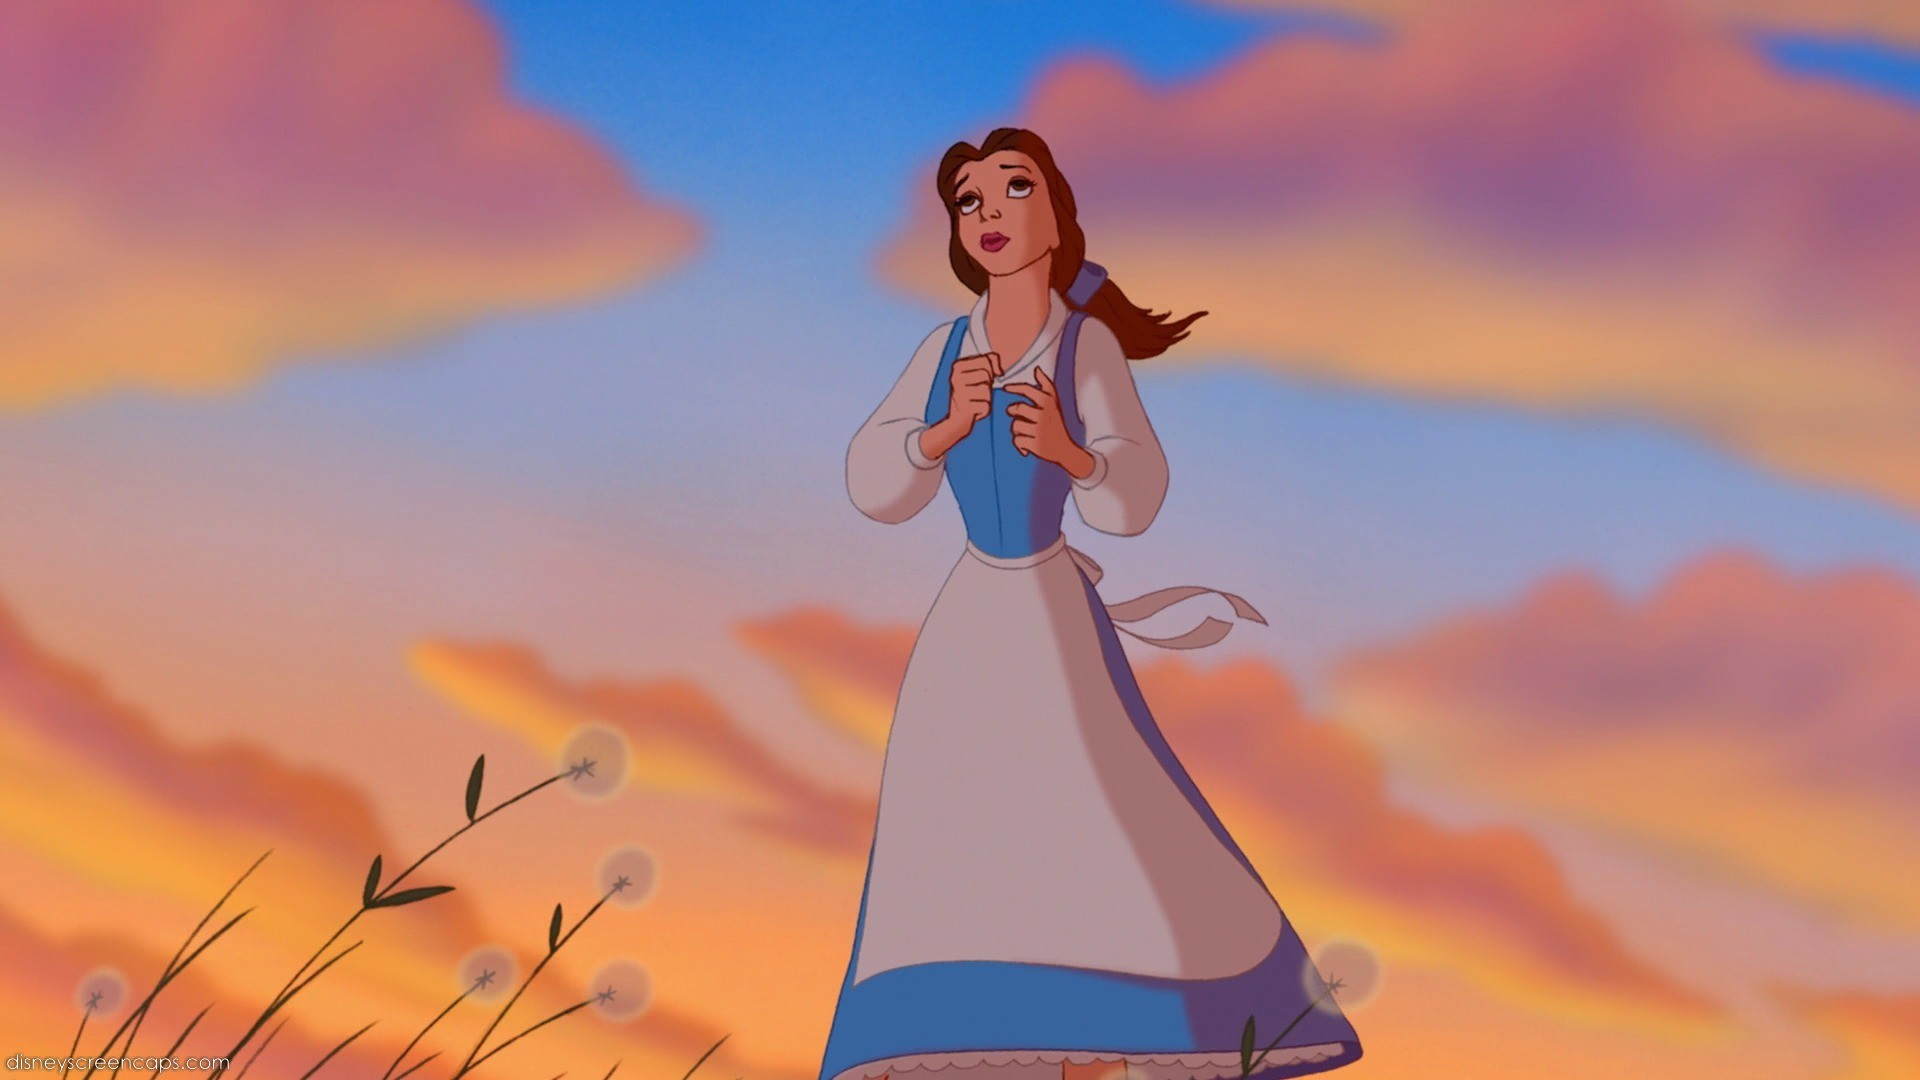 Res: 1920x1080, Belle and Pocahontas images Belle HD wallpaper and background photos